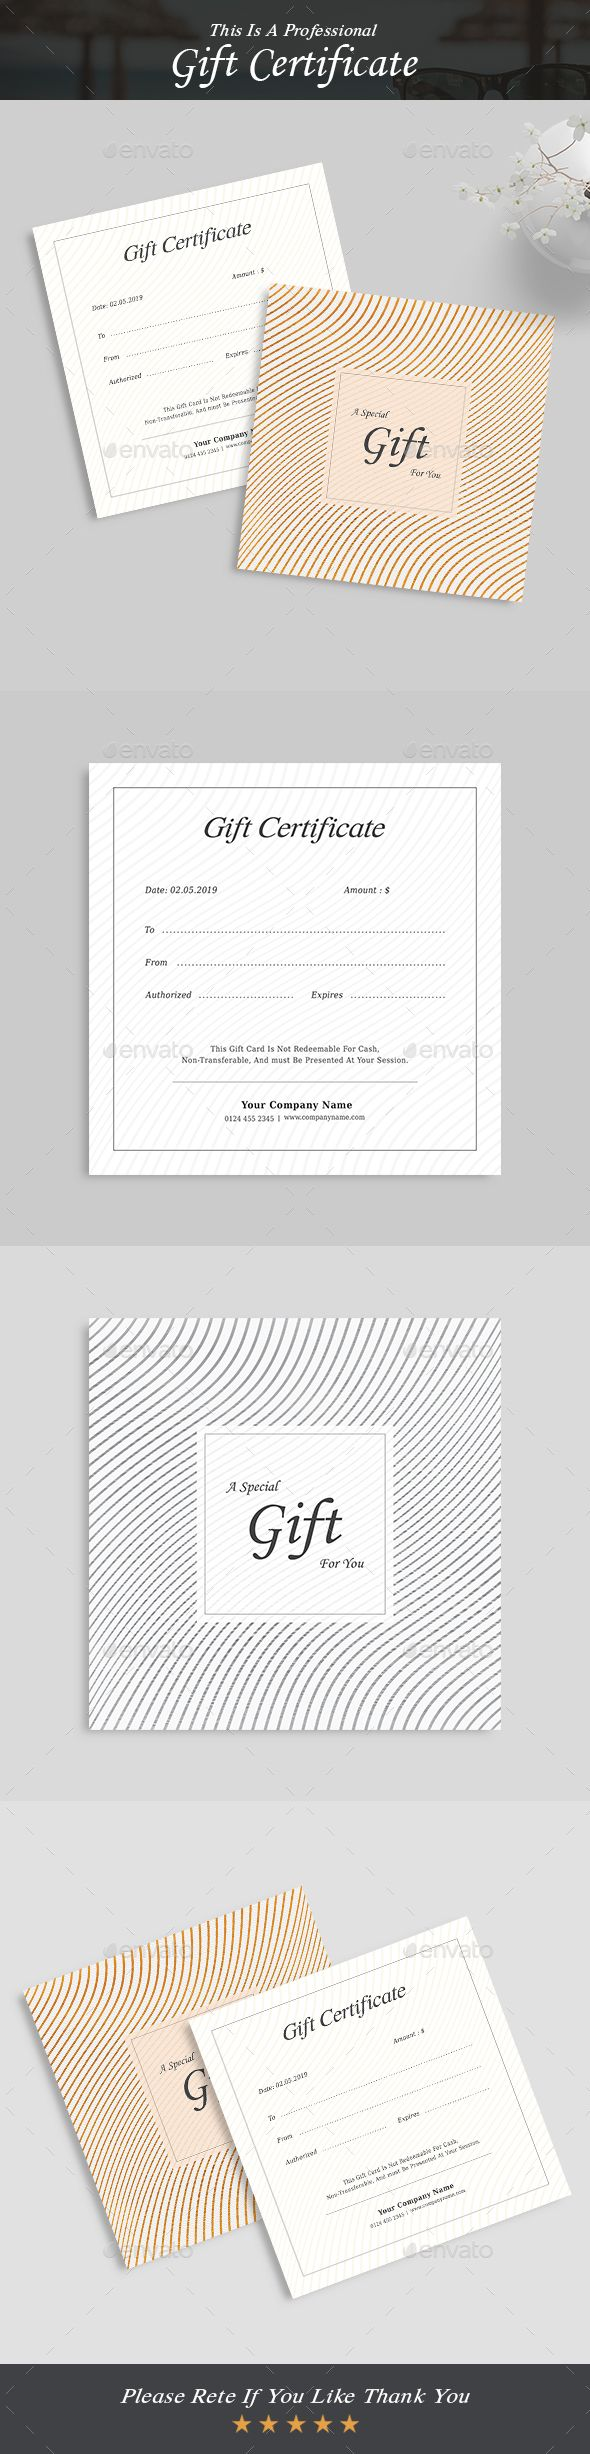 Authorization Letter Format For Dewa. authorize letter format  authorization Picture Ideas References